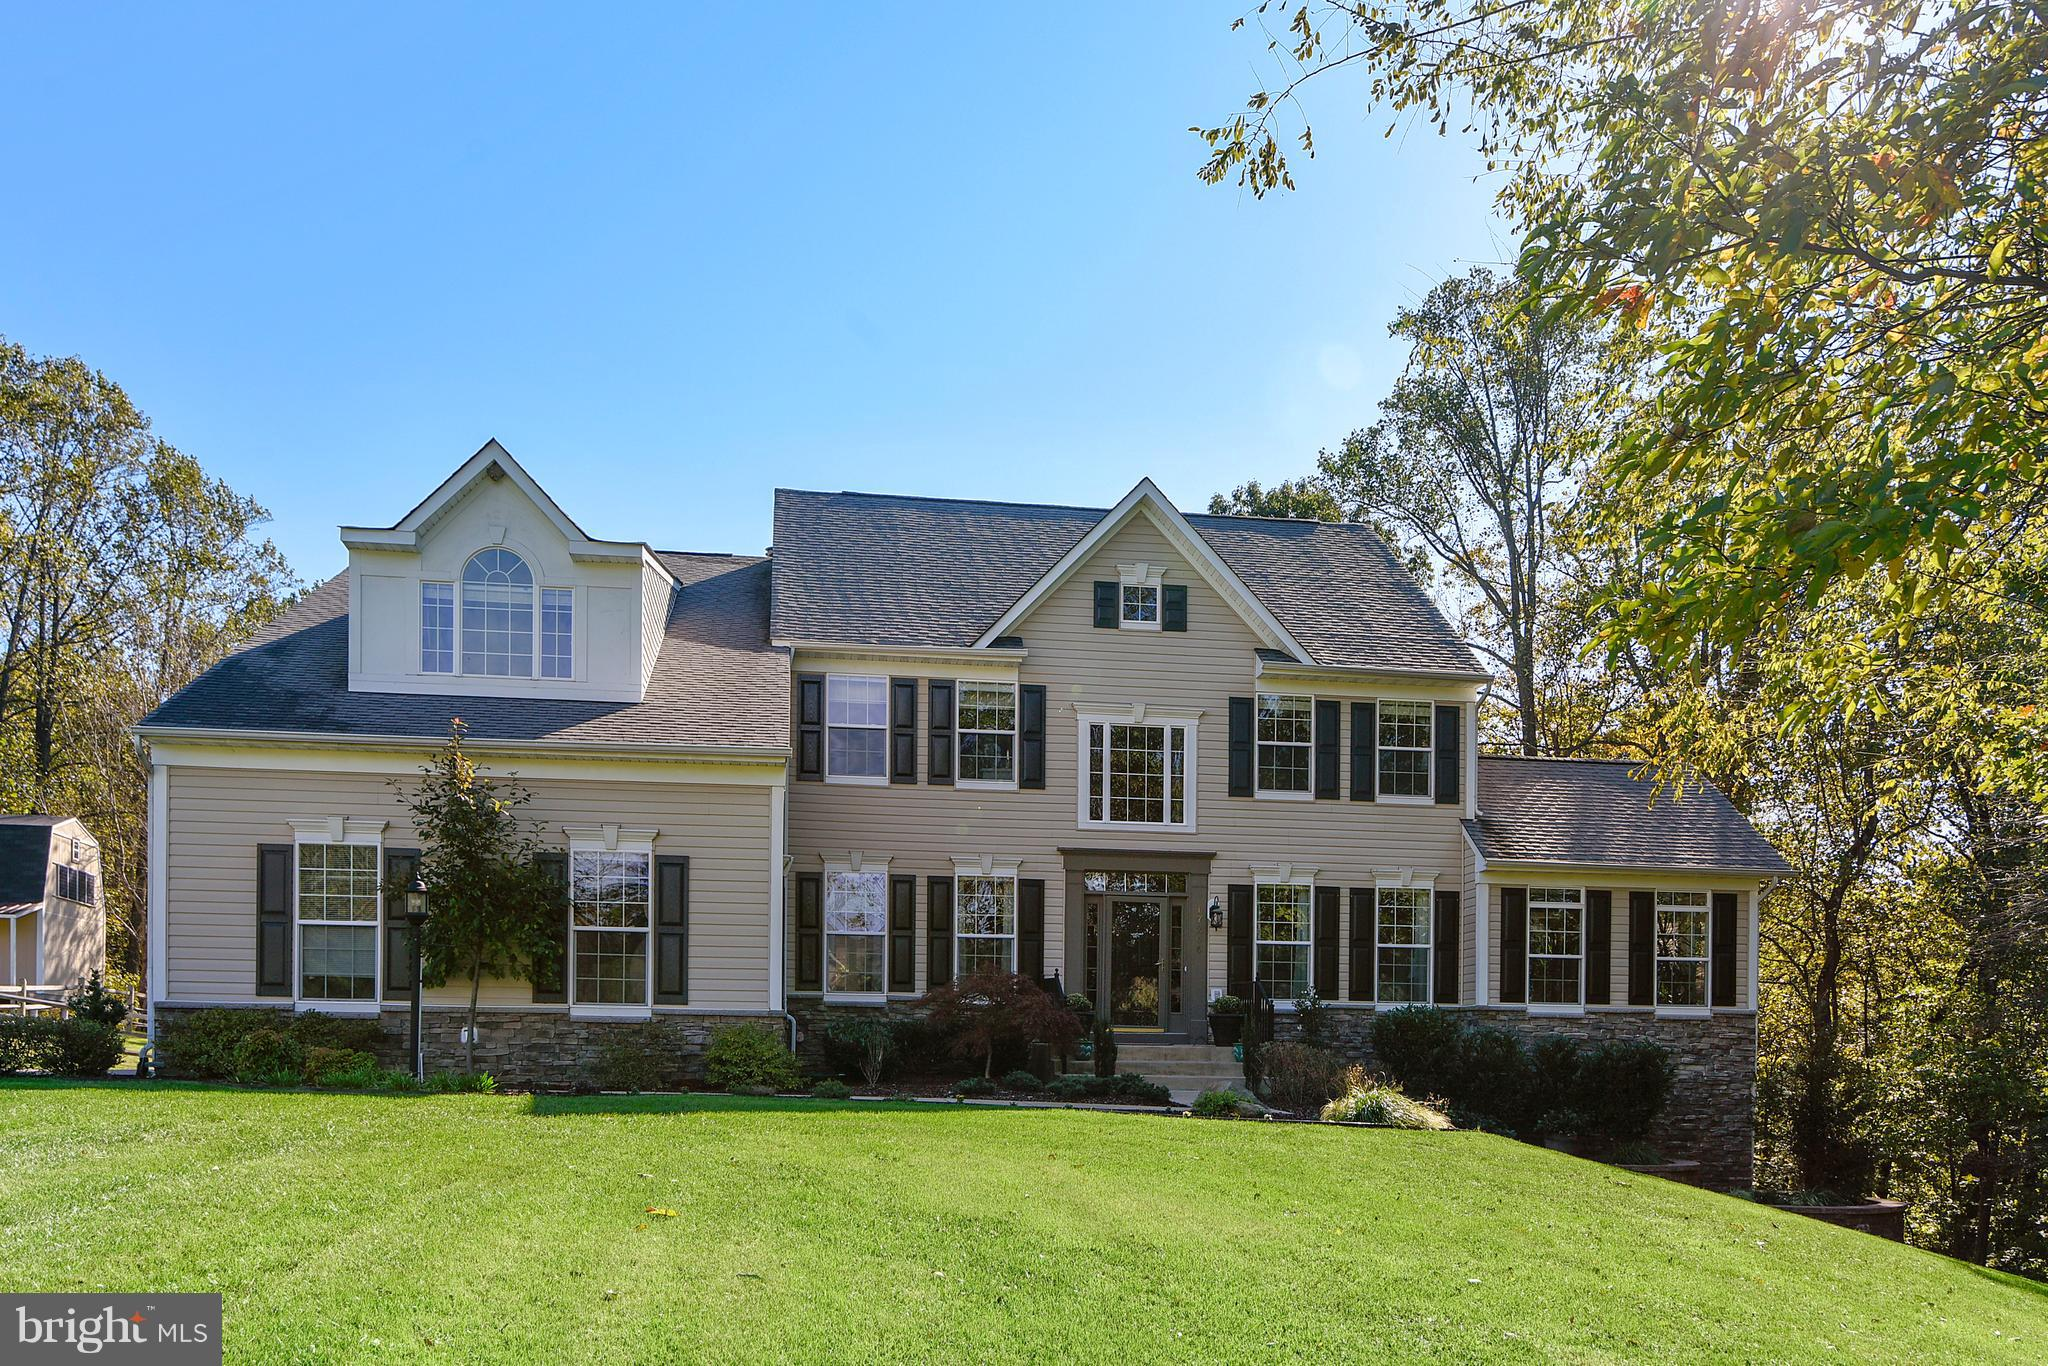 17266 FLINT FARM DRIVE, ROUND HILL, VA 20141